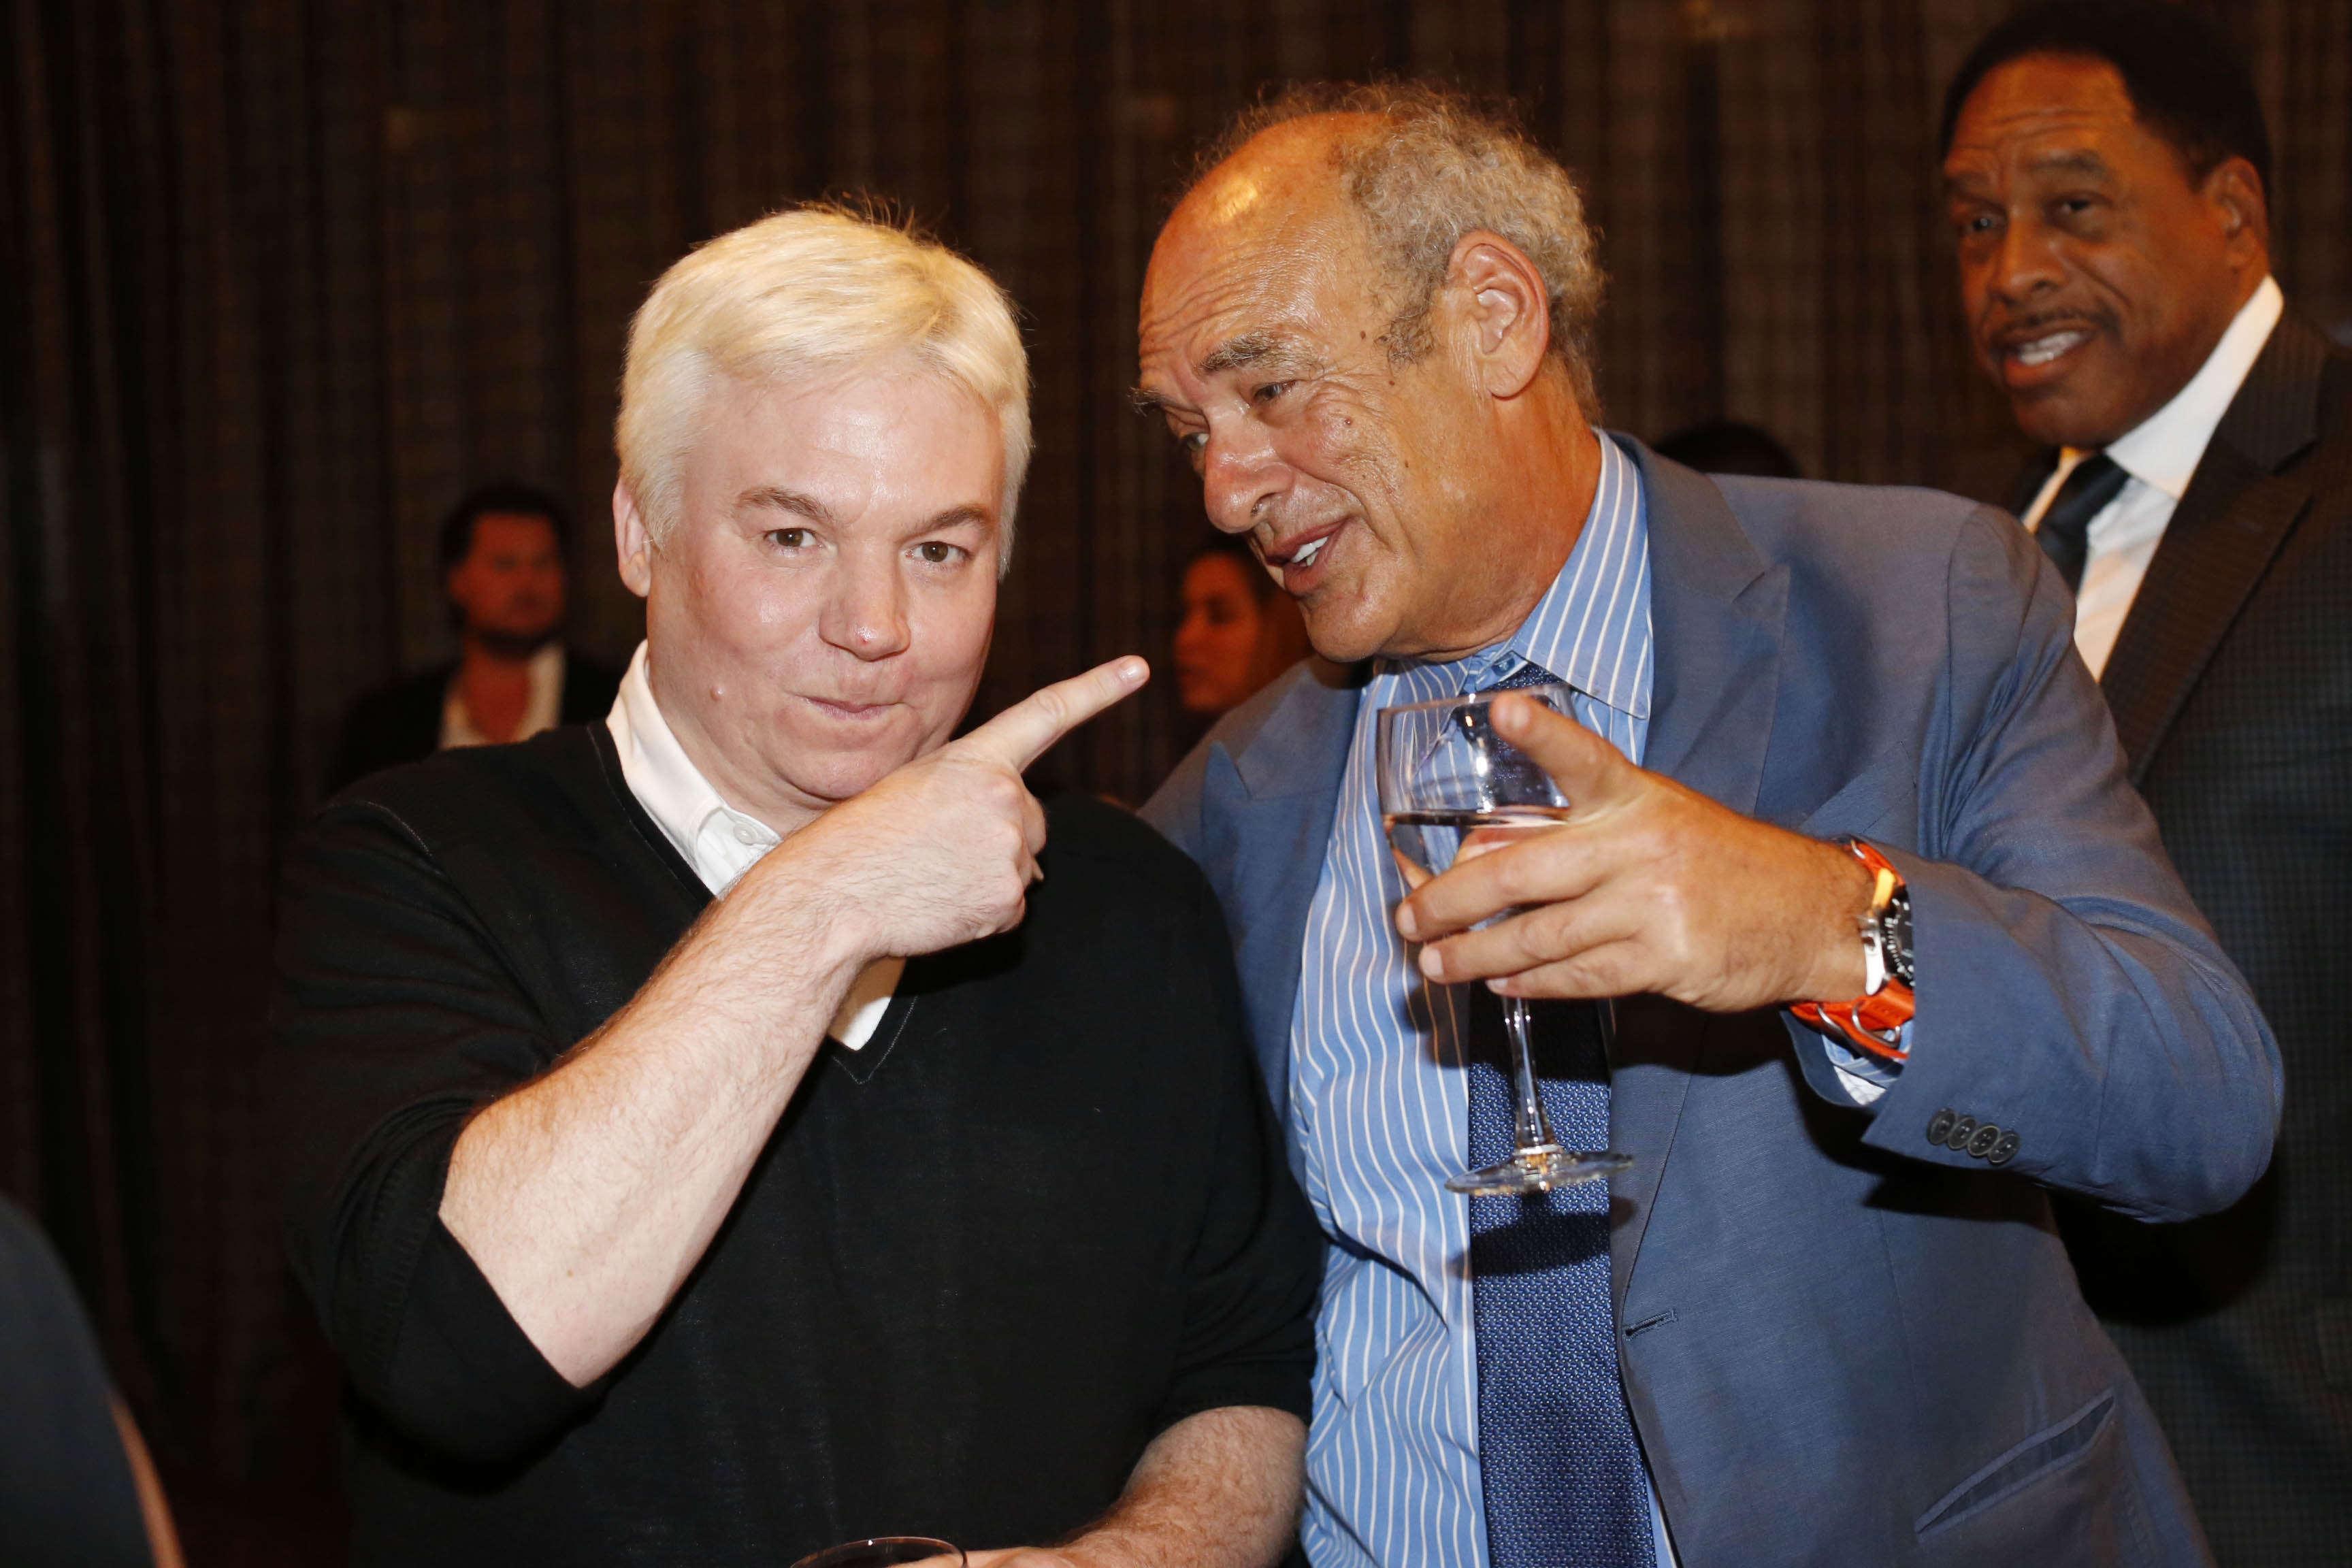 Legendary producer Shep Gordon, right, chats with actor Mike Myers during a fundraiser he cohosted to start a scholarship to the Culinary Institute of America in honor of his late friend, legendary chef Roger Verge, at the Lighthouse at Chelsea Piers in New York City, Monday, Sept. 12, 2016.  Myers produced a documentary about Gordon titled 'Supermensch.'  (Derek Gee/Buffalo News)